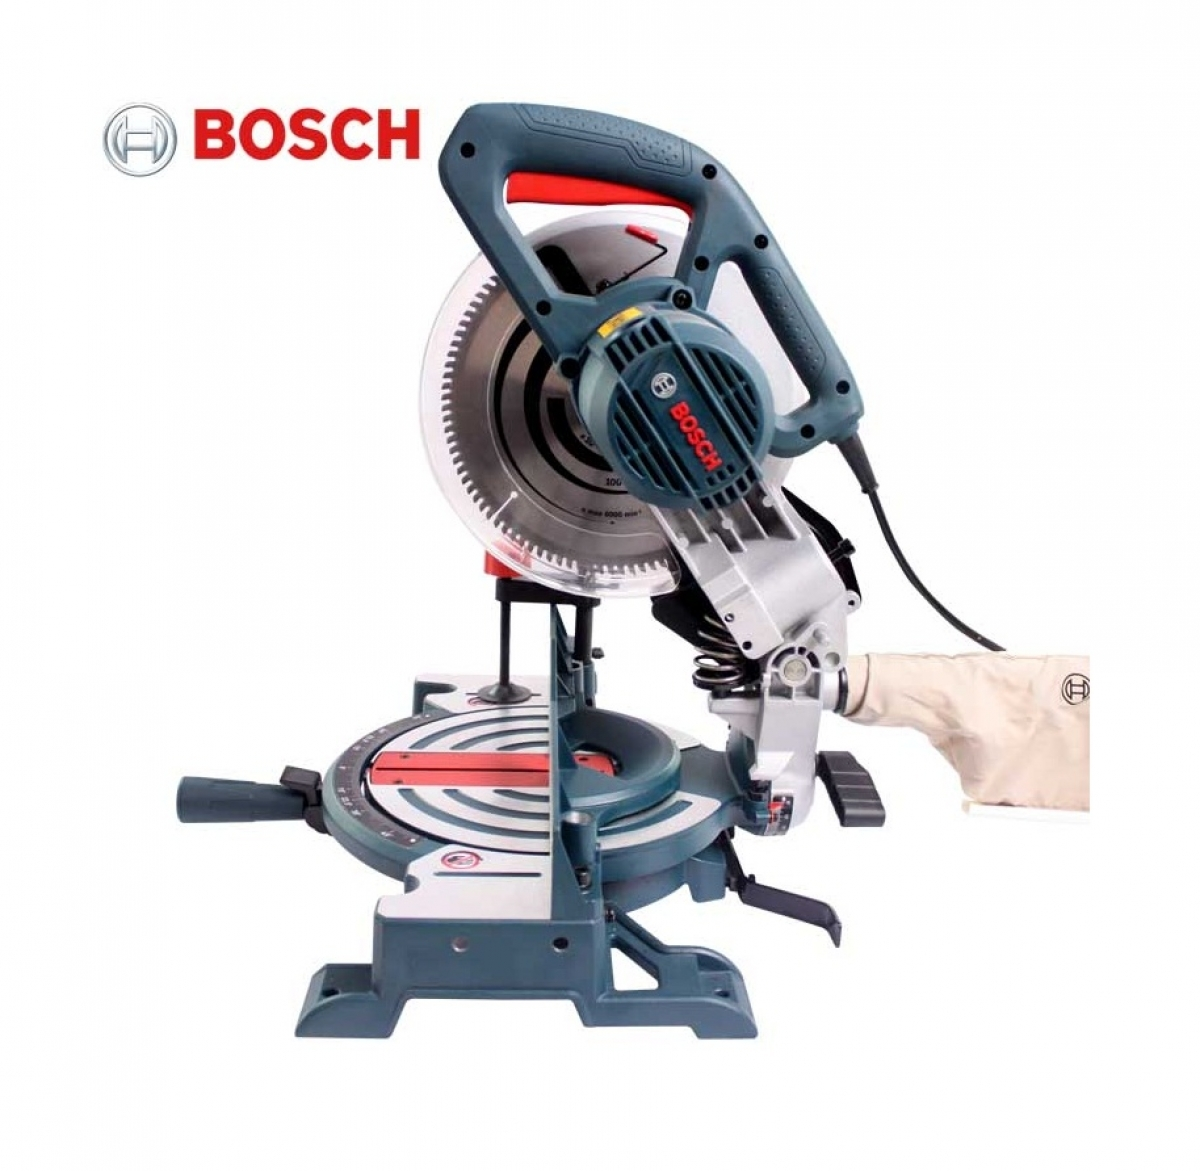 bosch gcm 1 700w 255mm mitre saw my power tools. Black Bedroom Furniture Sets. Home Design Ideas